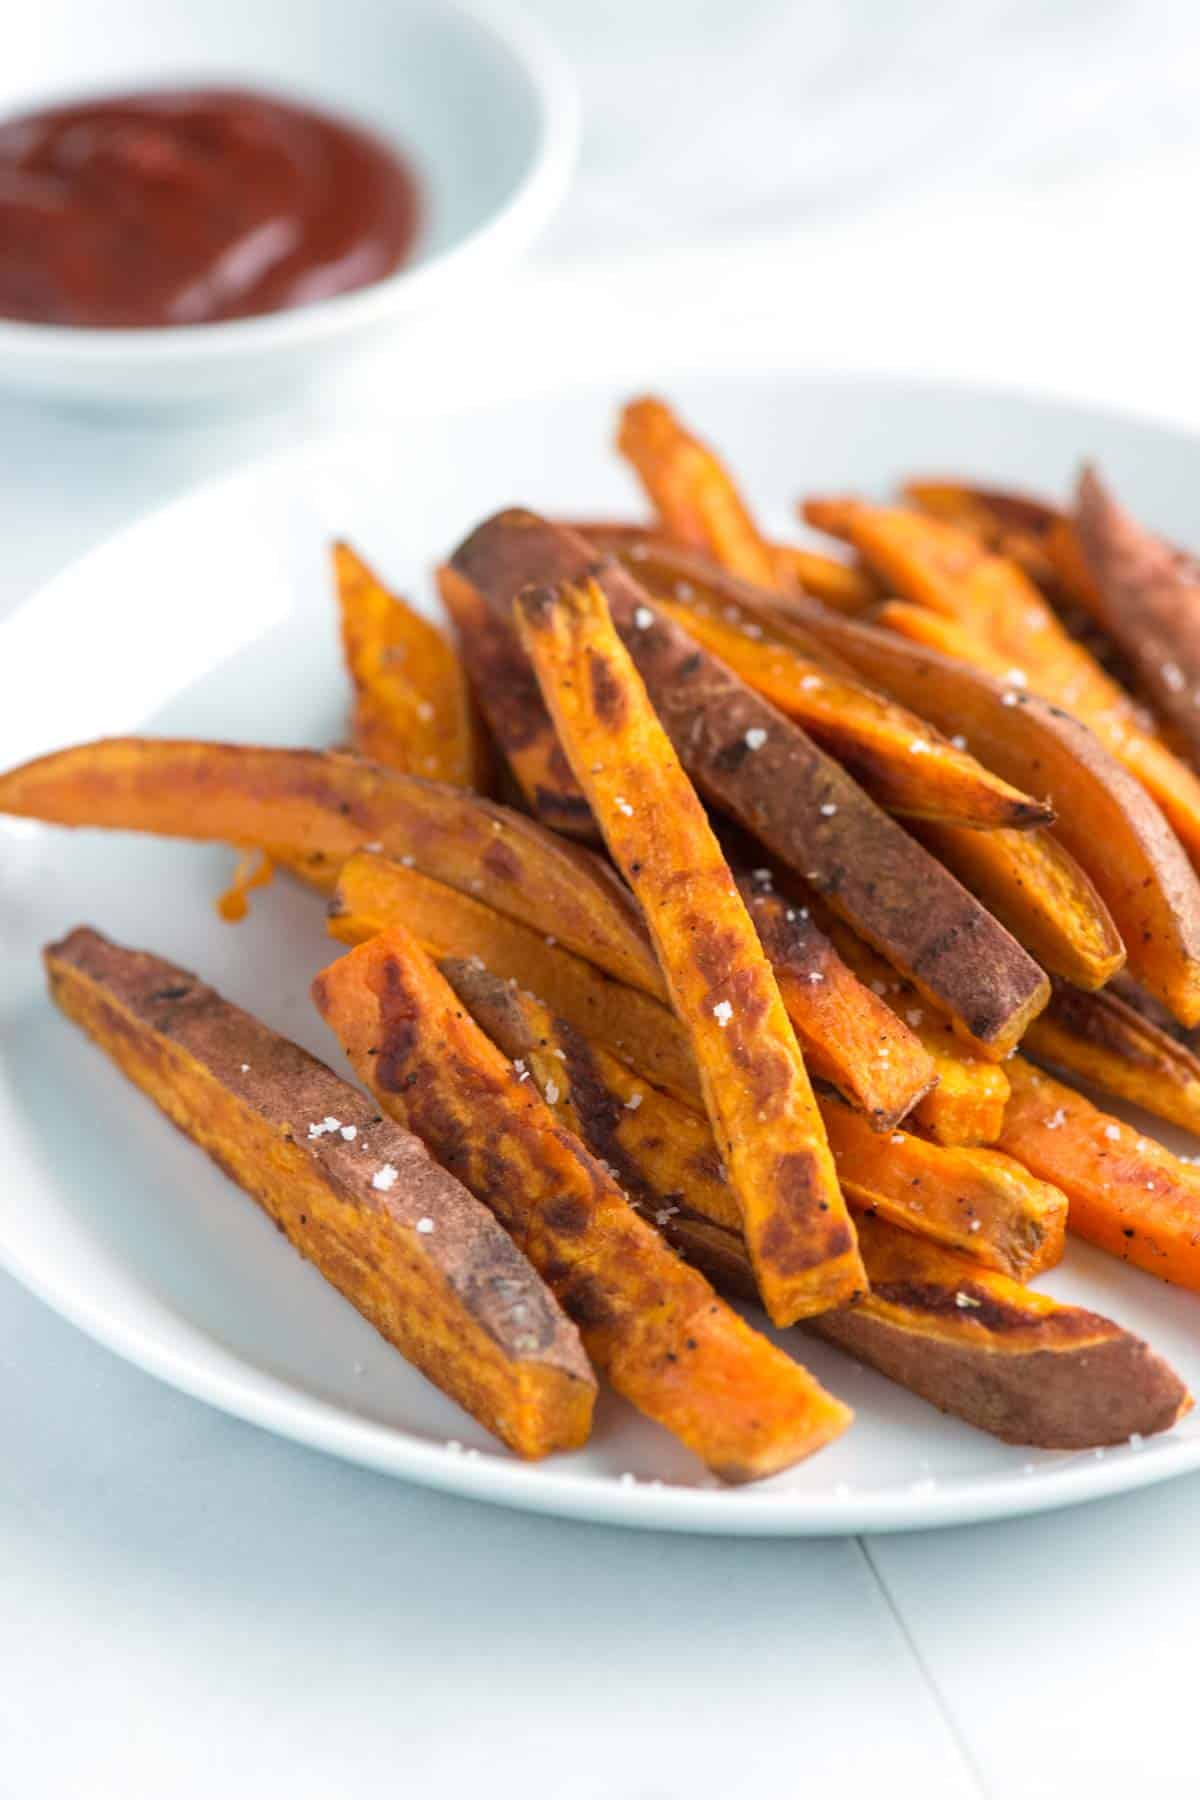 How to make sweet potato oven fries crispy